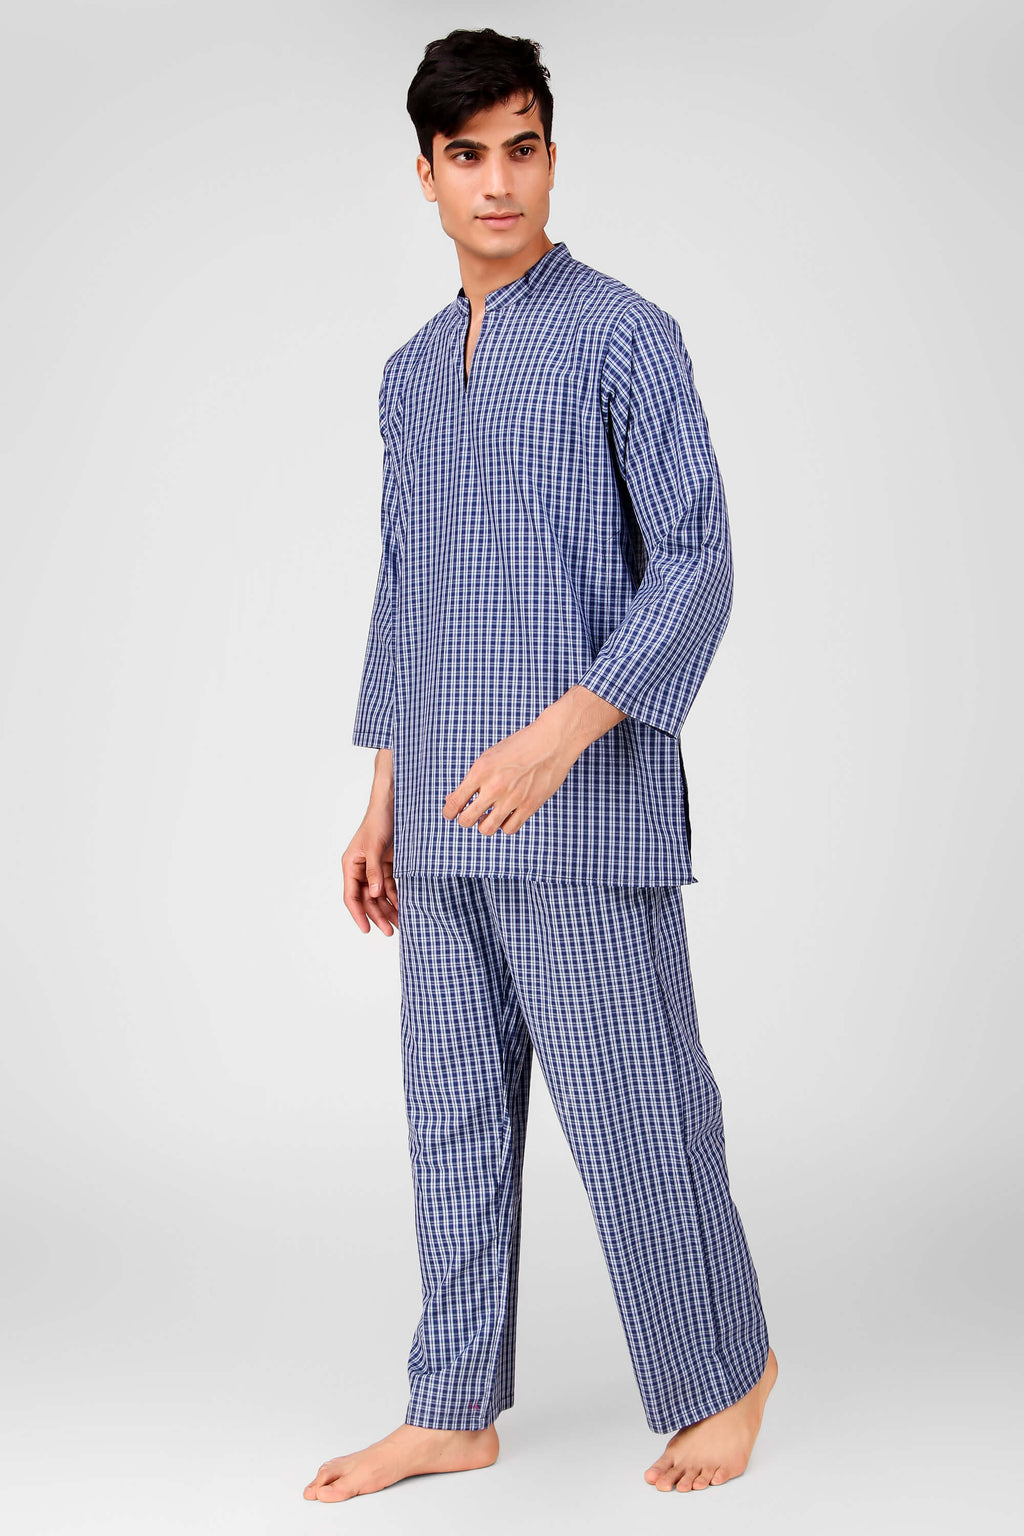 VFB, Men's Pyjama Suit